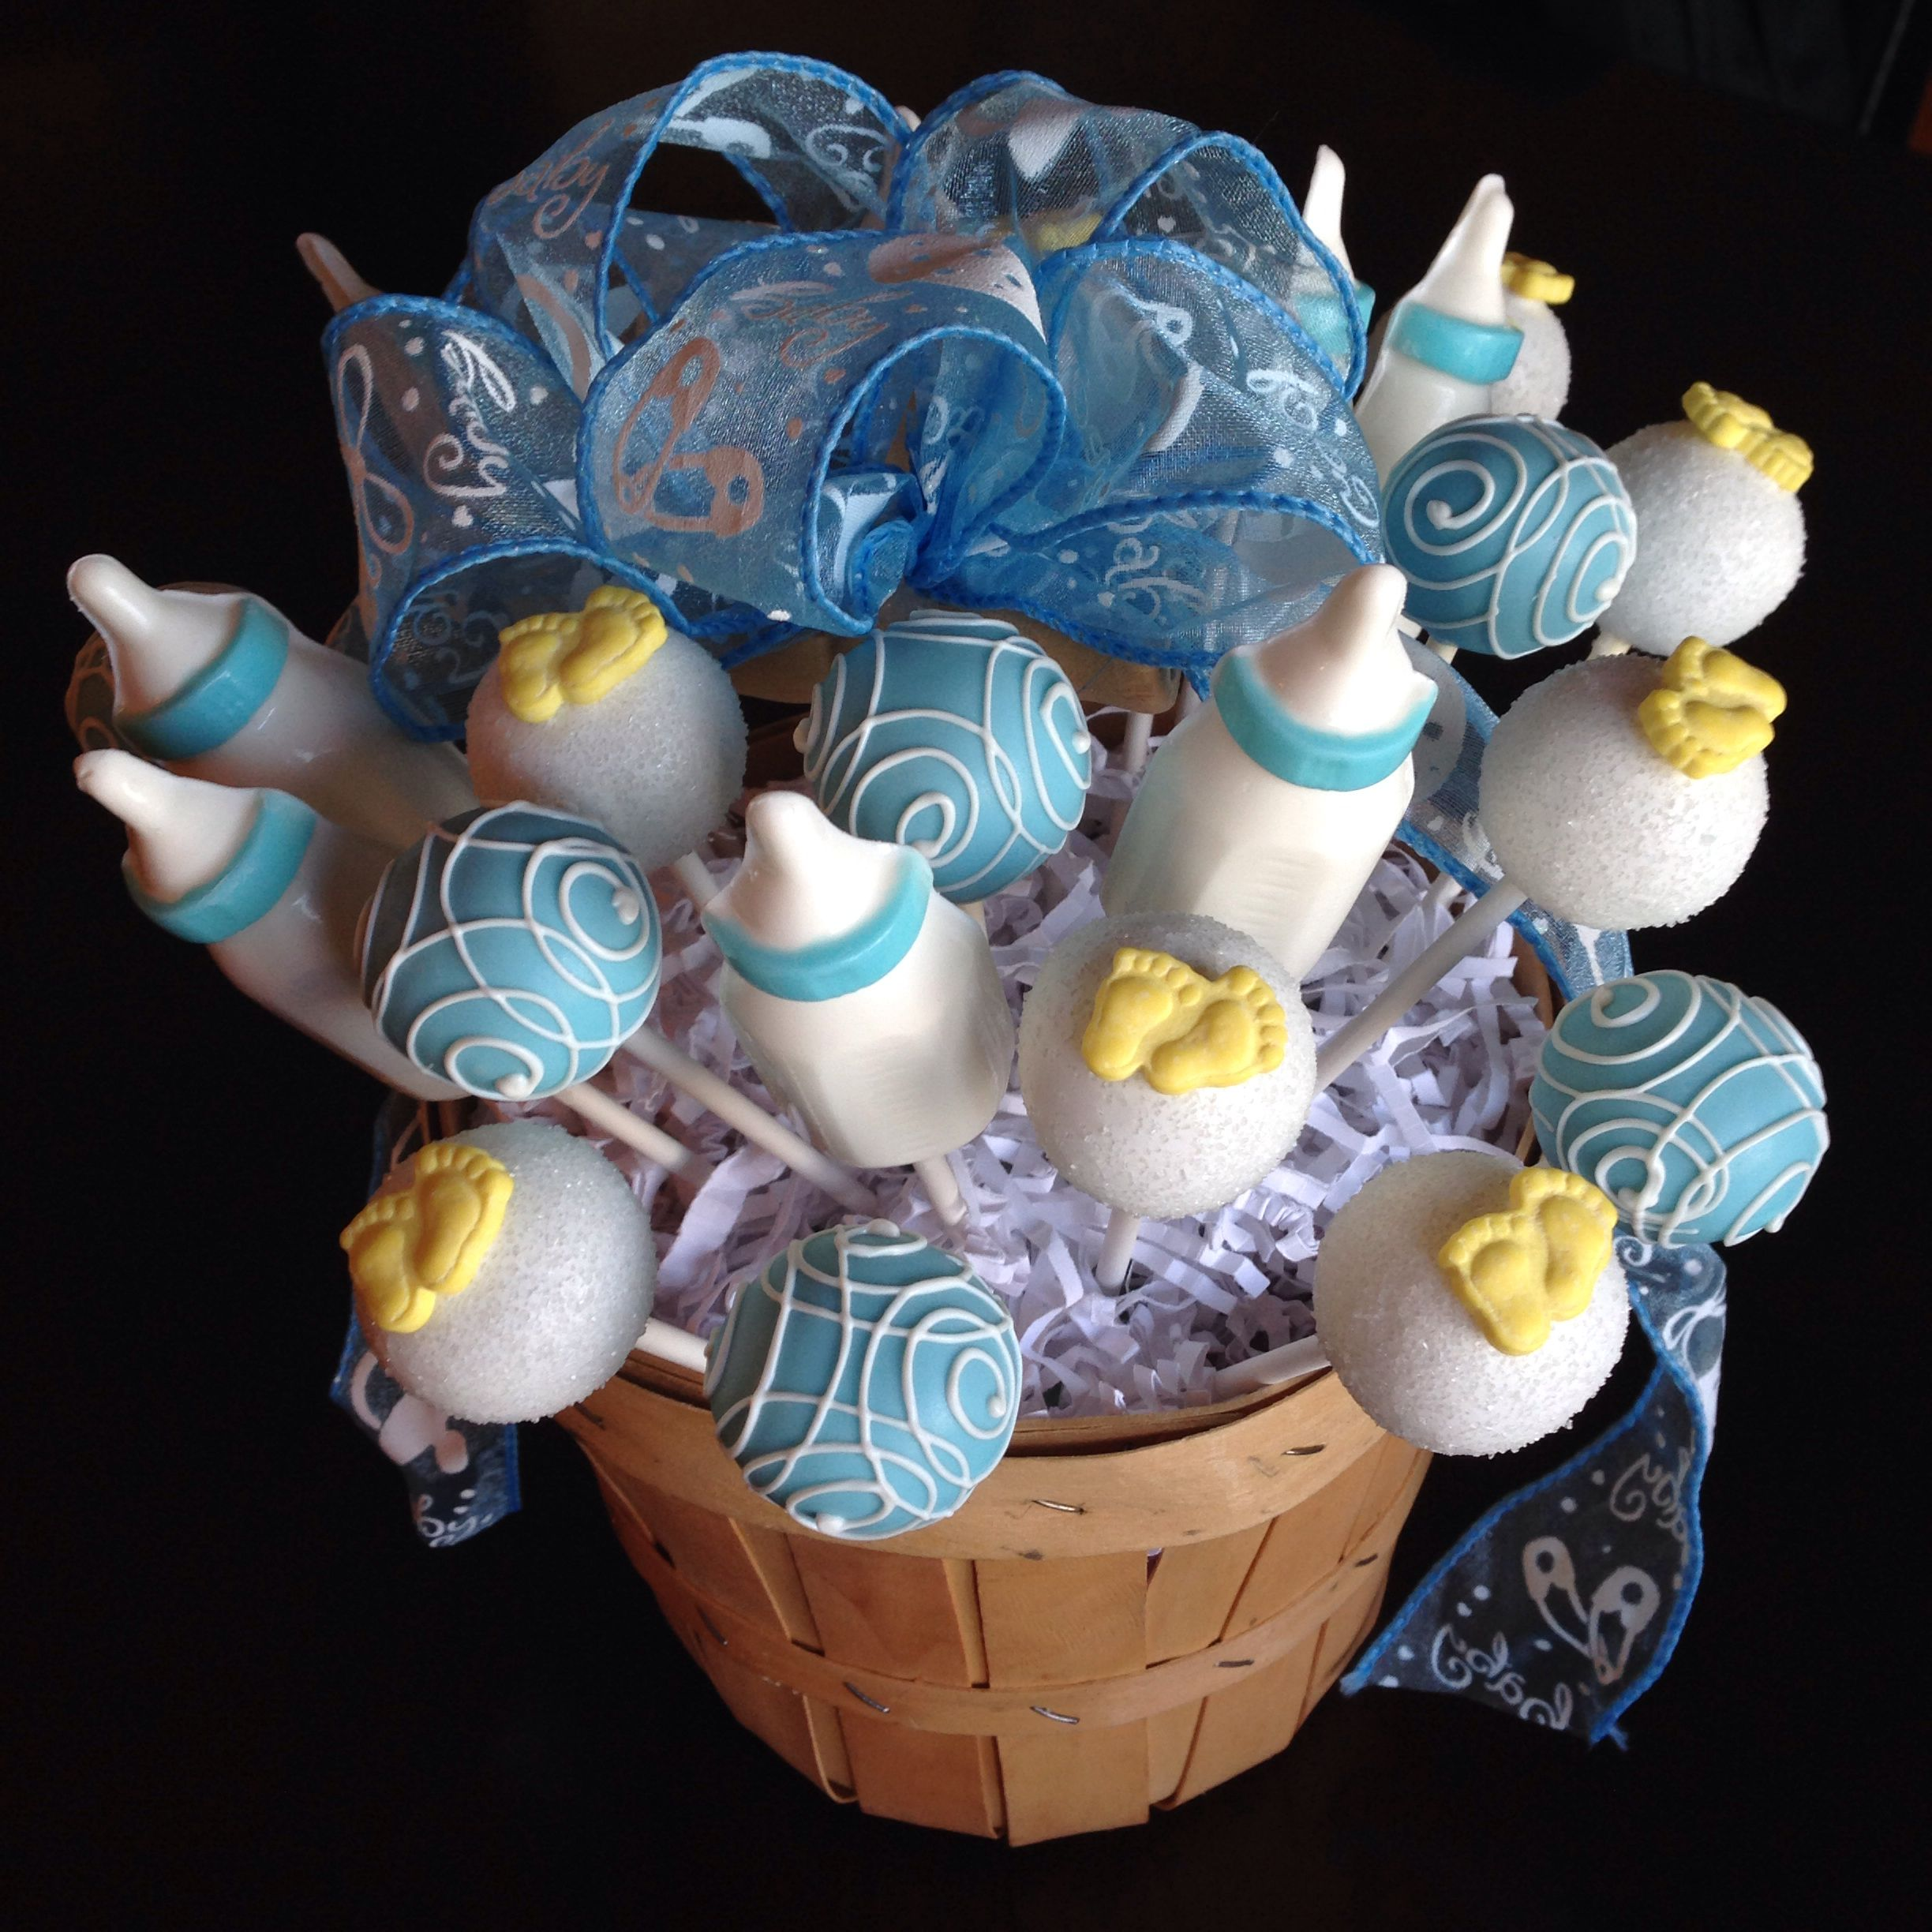 It S A Boy Baby Shower Cake Pops With Images Cake Pops Baby